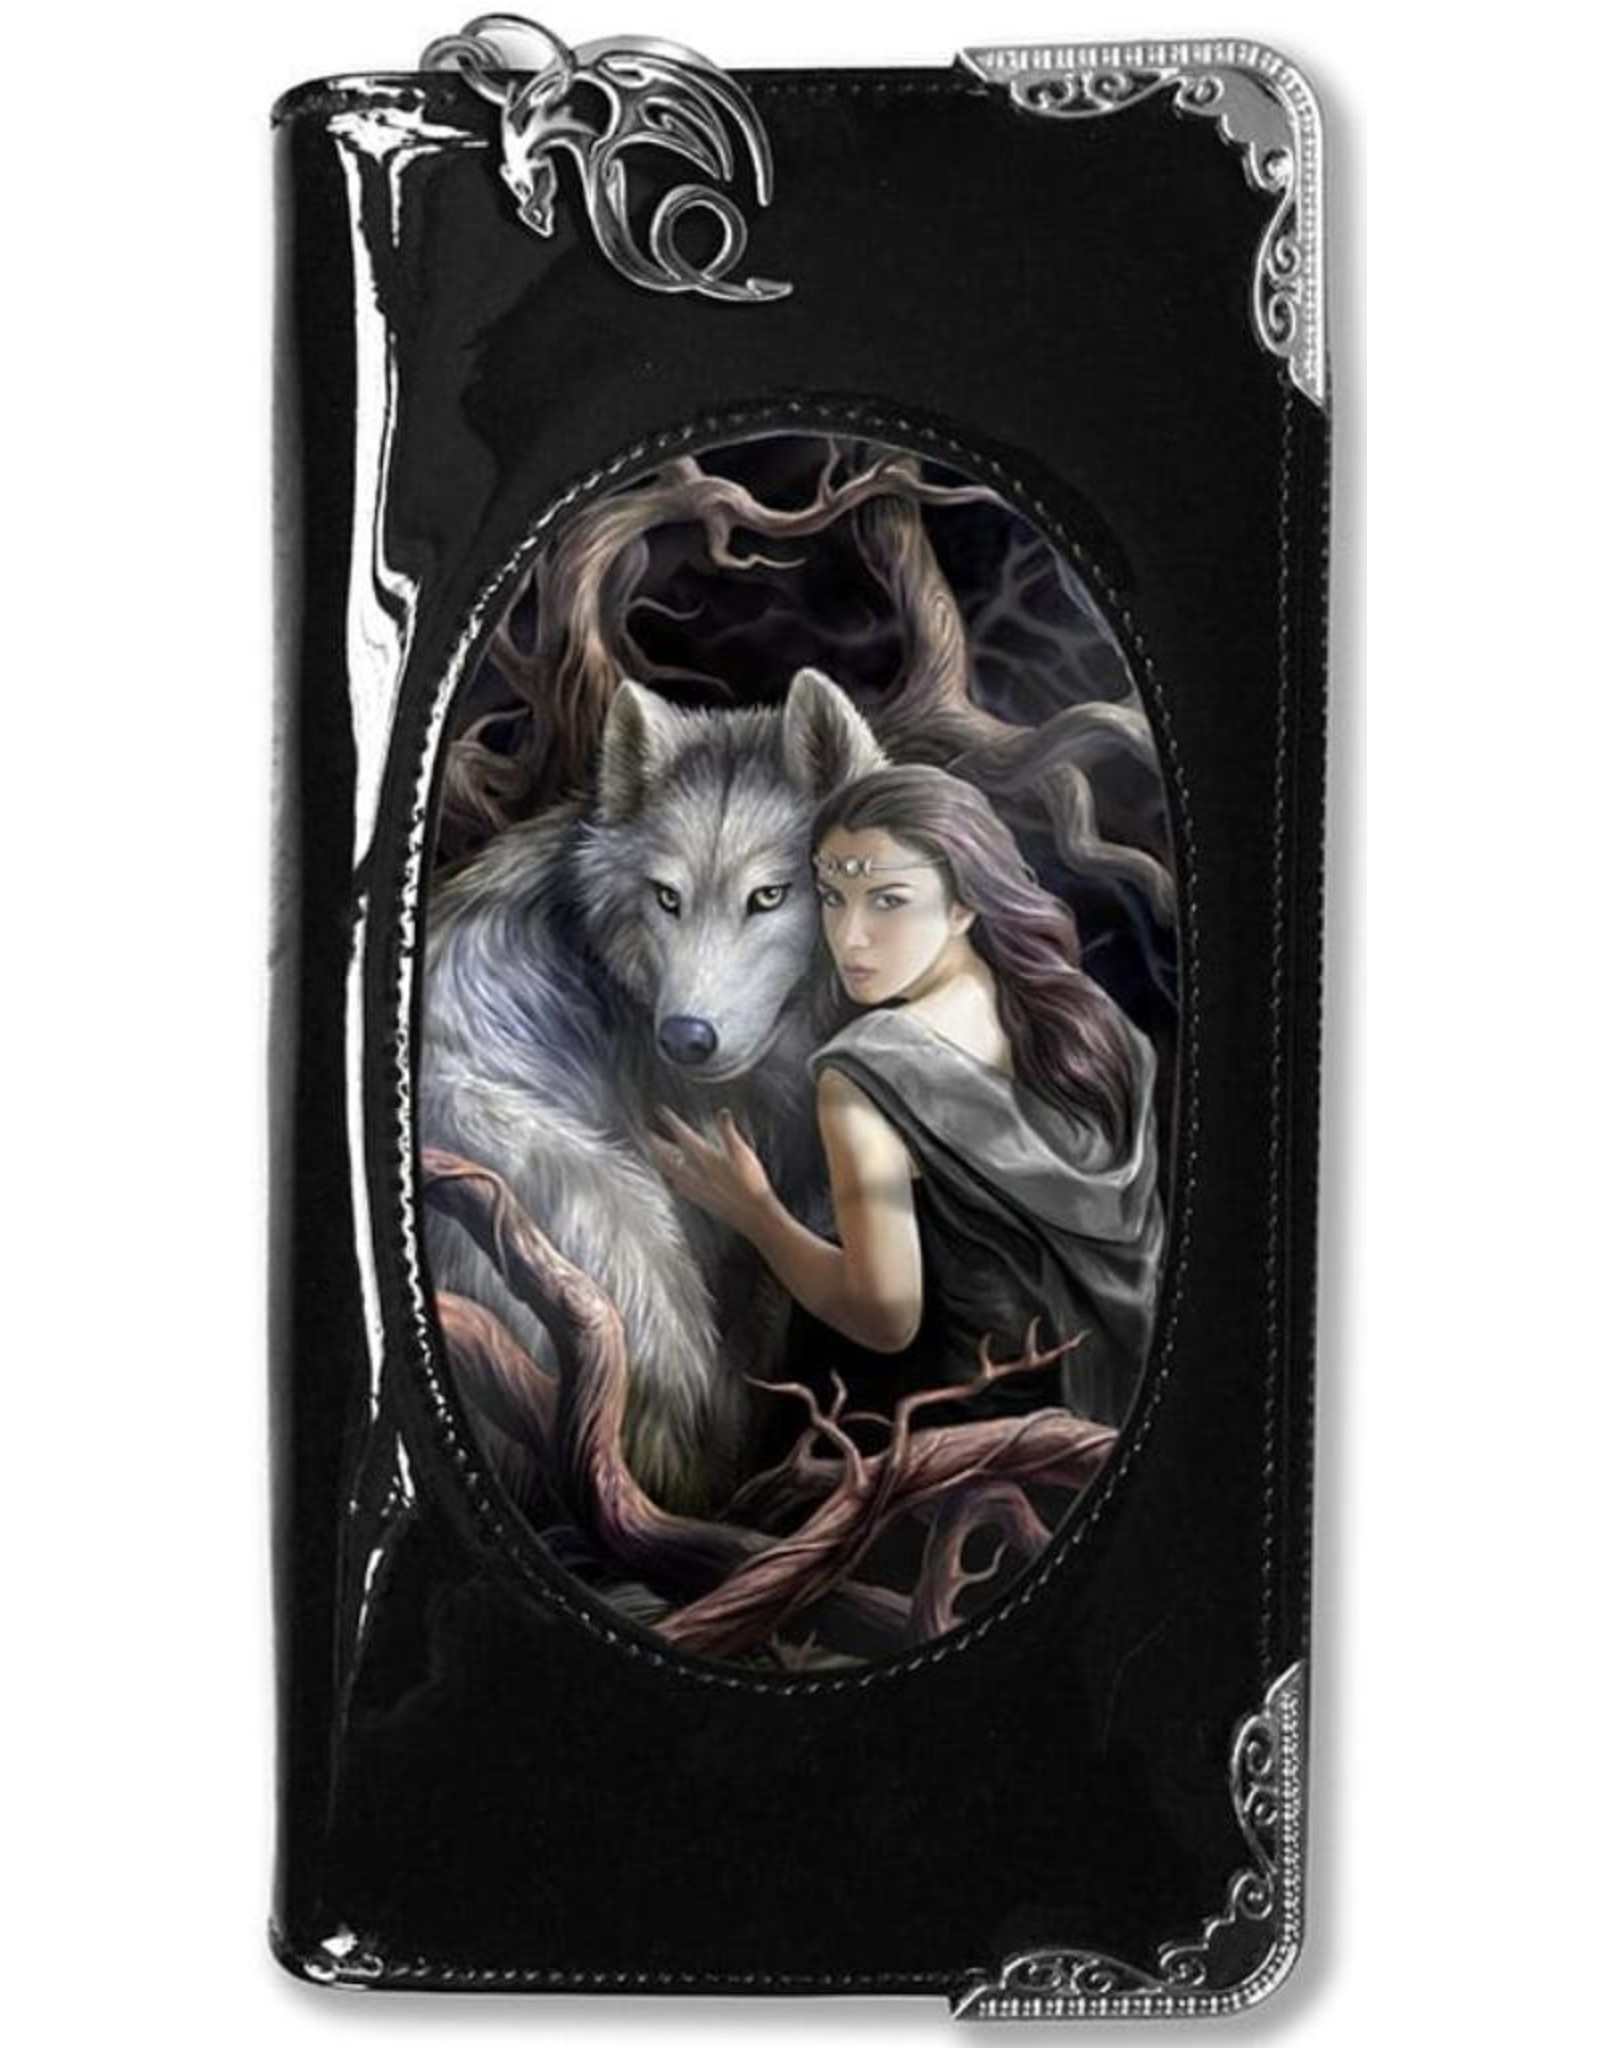 Anne Stokes Fantasy bags and wallets - Anne Stokes 3D lenticular purse Soul Bond